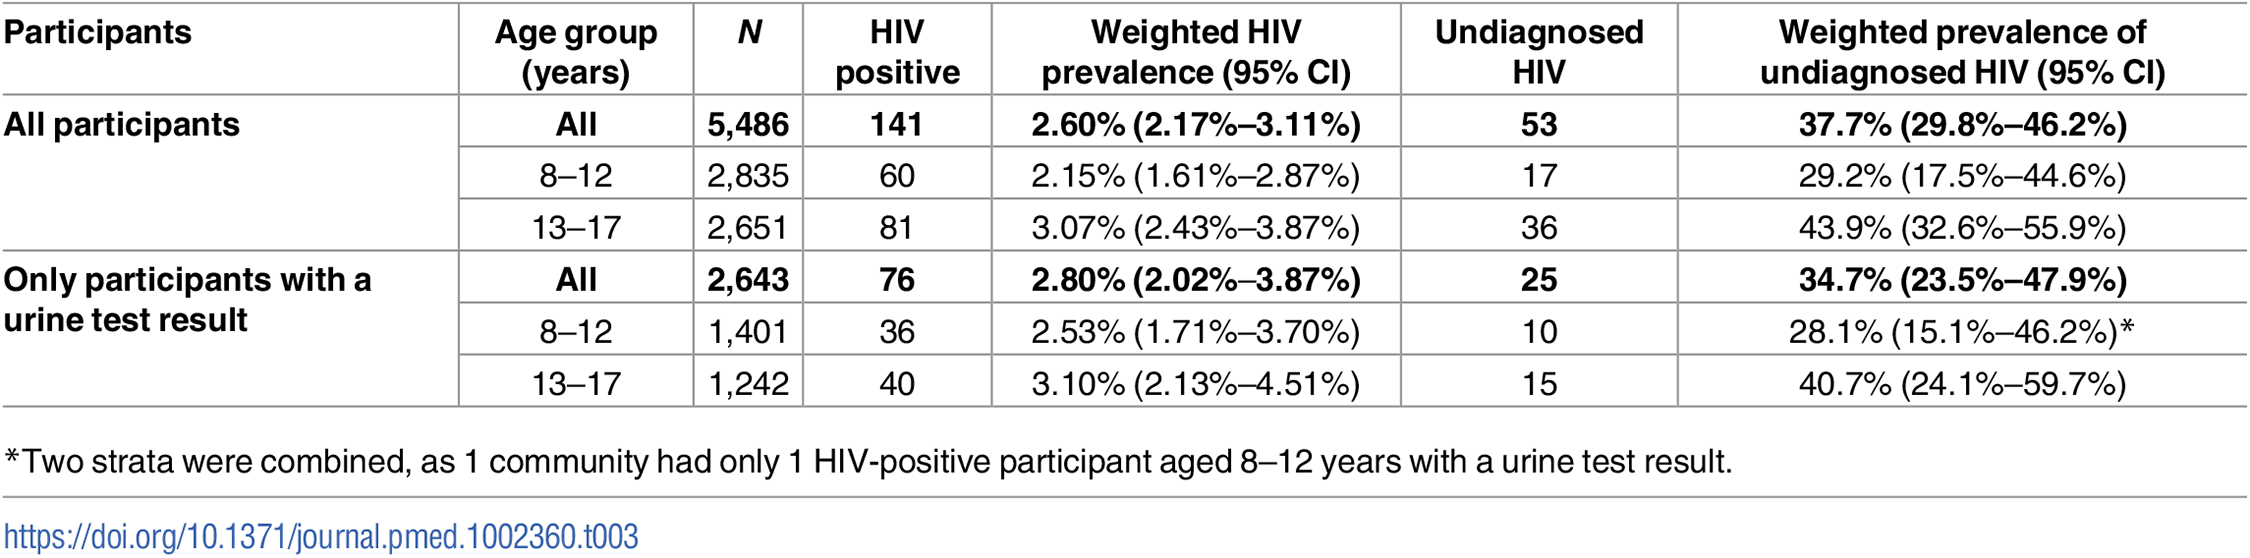 HIV prevalence and proportion of undiagnosed HIV infection.